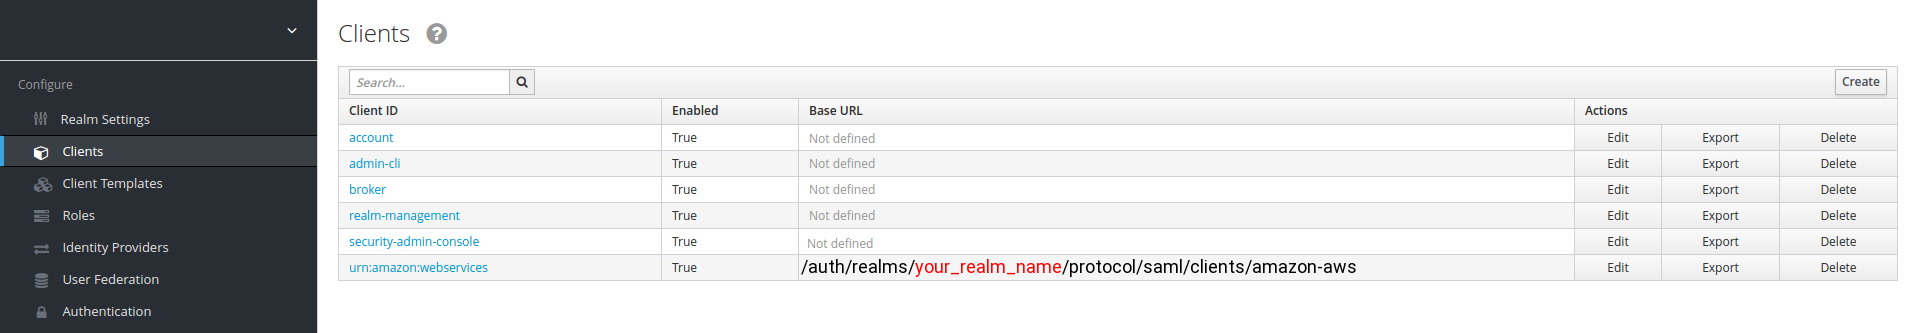 your_realm_name — is the name of the keycloak realm, for which you configure SAML client